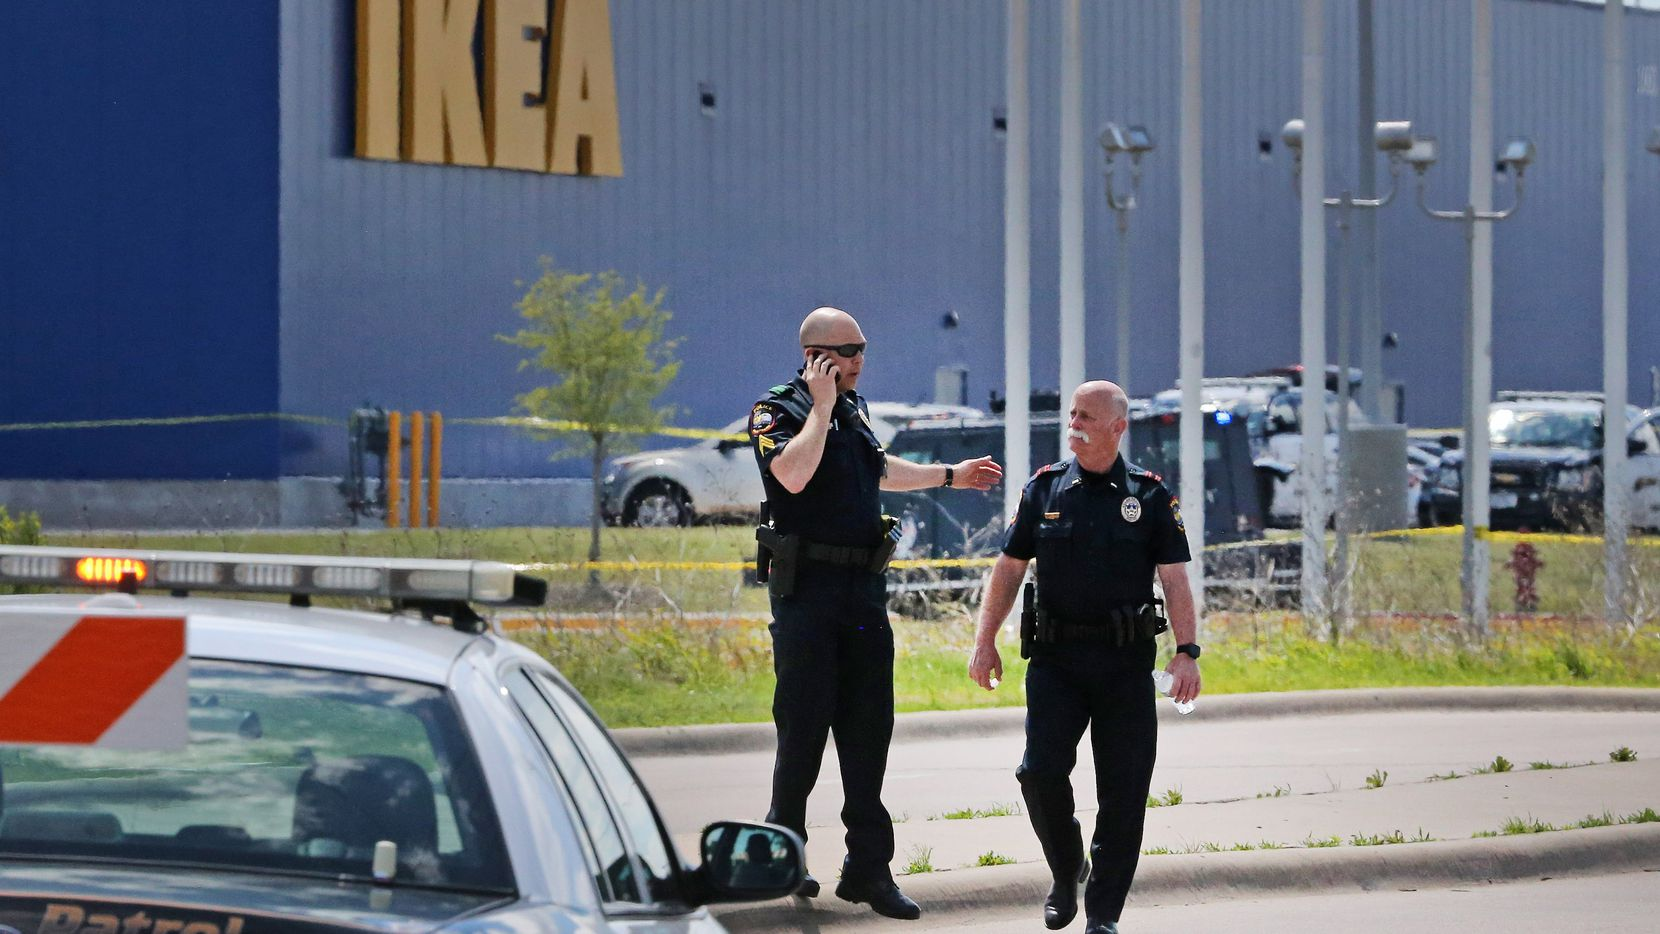 Grand Prairie police officers at the scene of a confrontation with an armed man  near the Ikea store Monday.